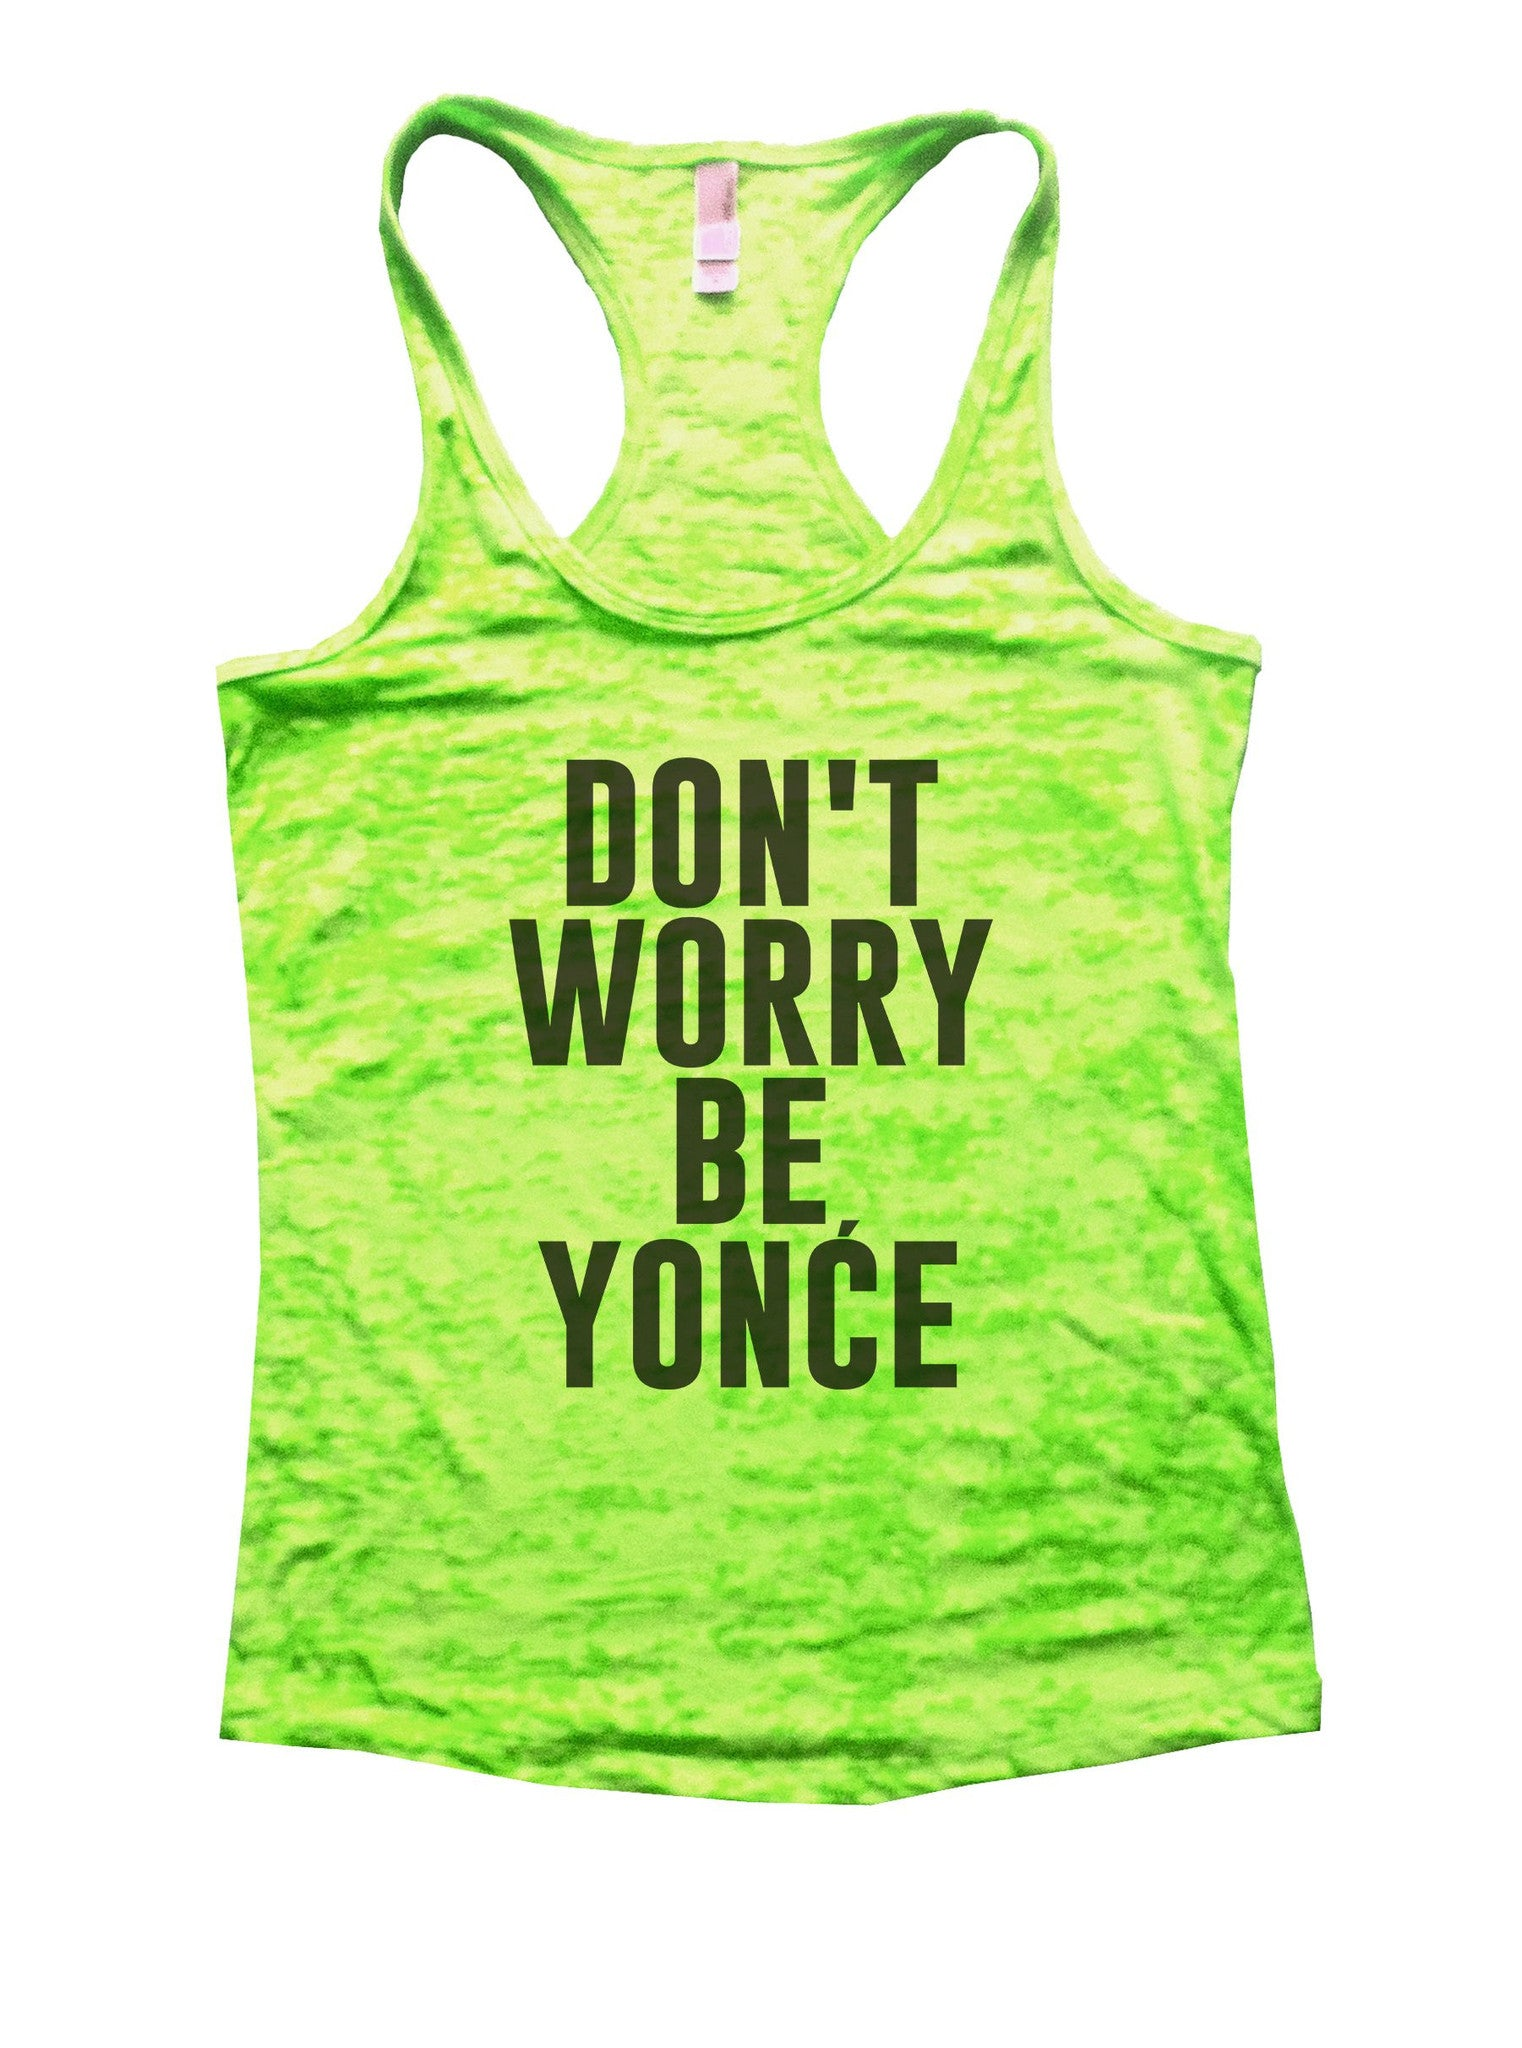 Don't Worry Be Yonce Burnout Tank Top By BurnoutTankTops.com - 934 - Funny Shirts Tank Tops Burnouts and Triblends  - 3